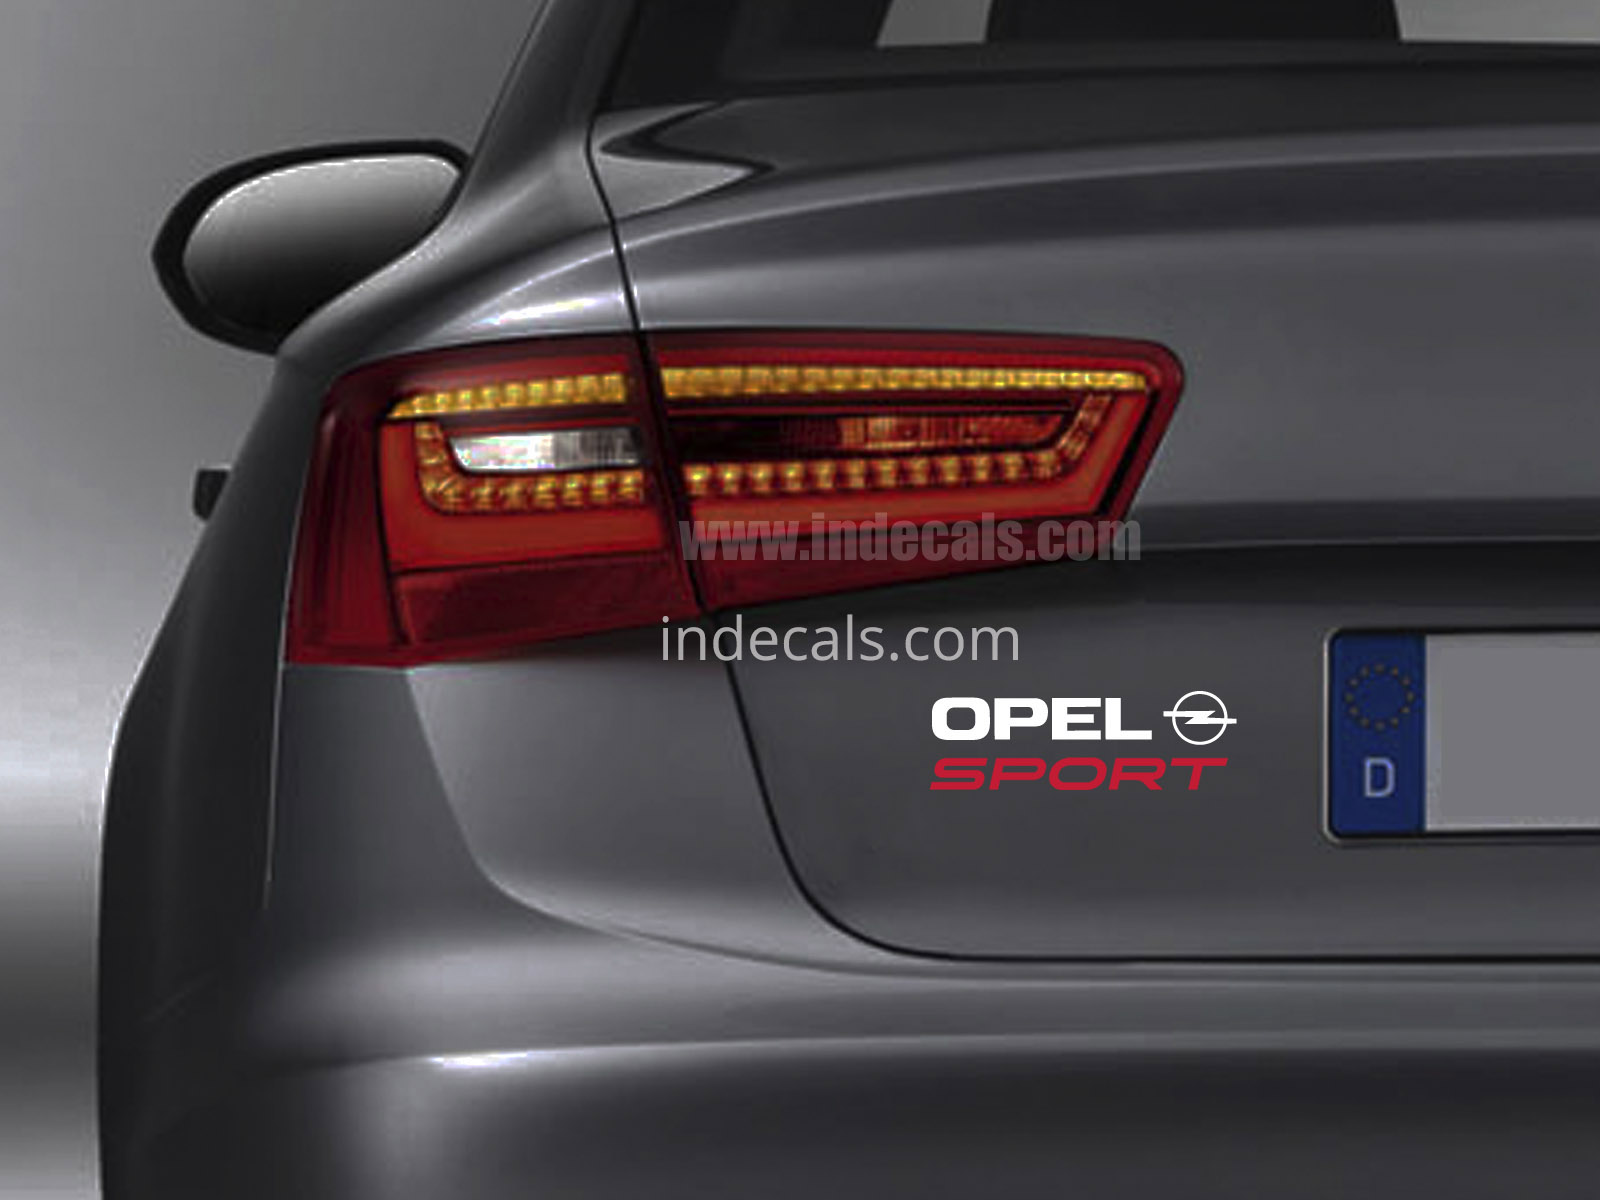 1 x Opel Sports Sticker for Trunk - White & Red